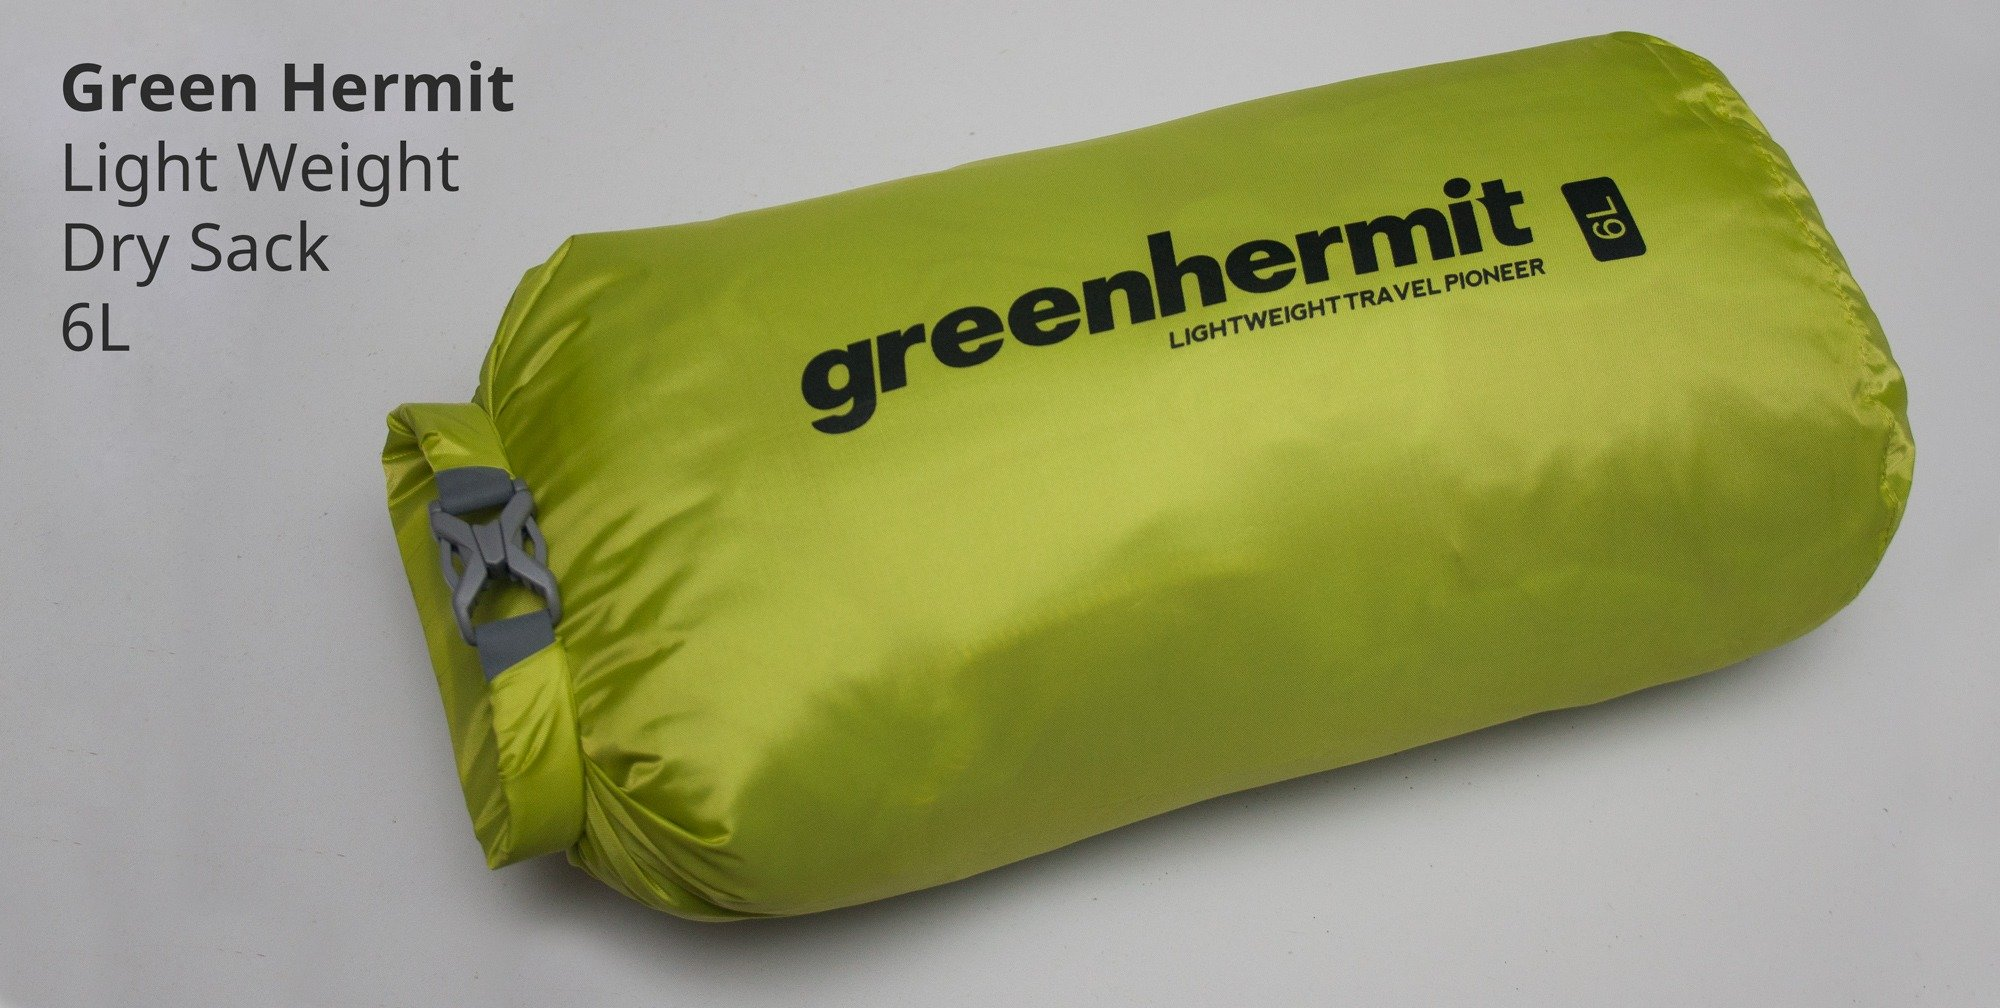 Green Hermit Lightweight Dry Sack 6L